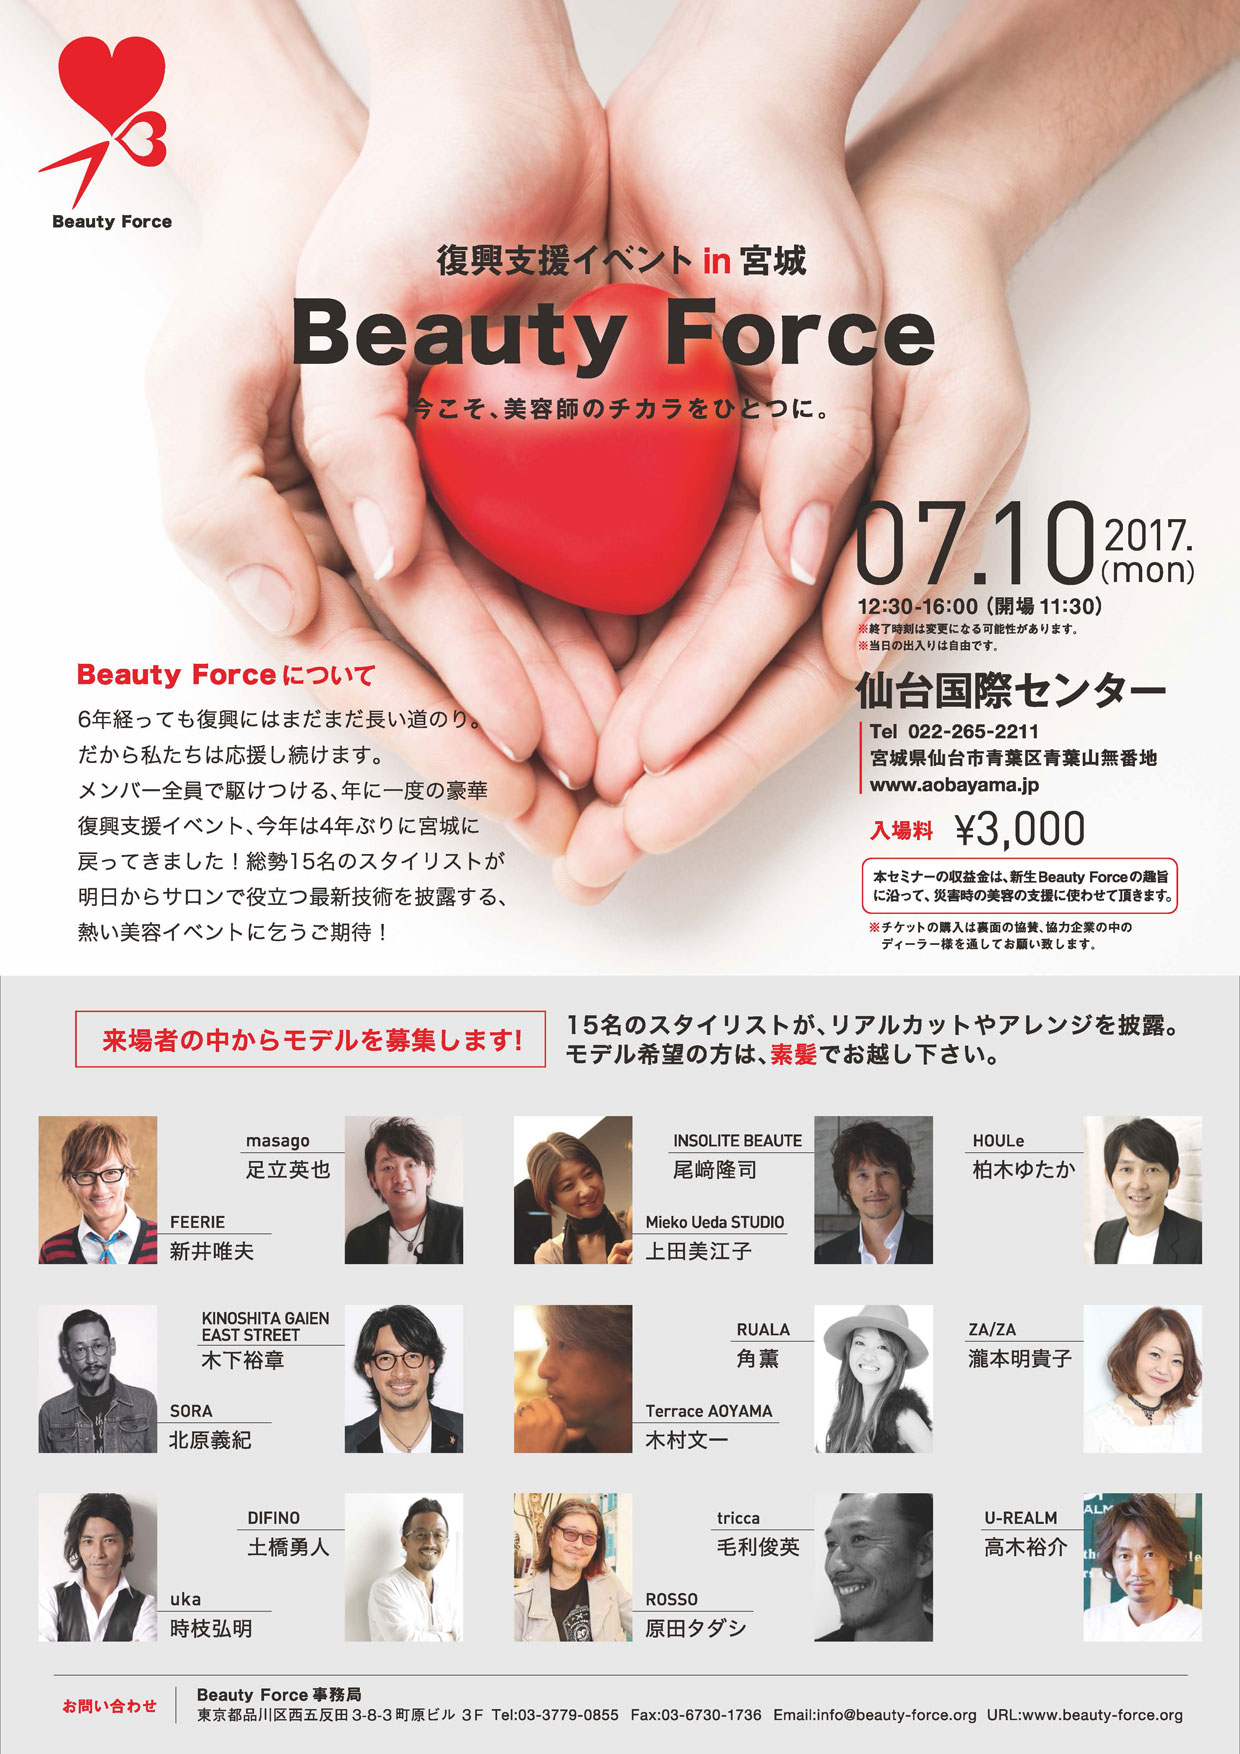 Beauty Force 復興支援イベント in 宮城開催のご案内